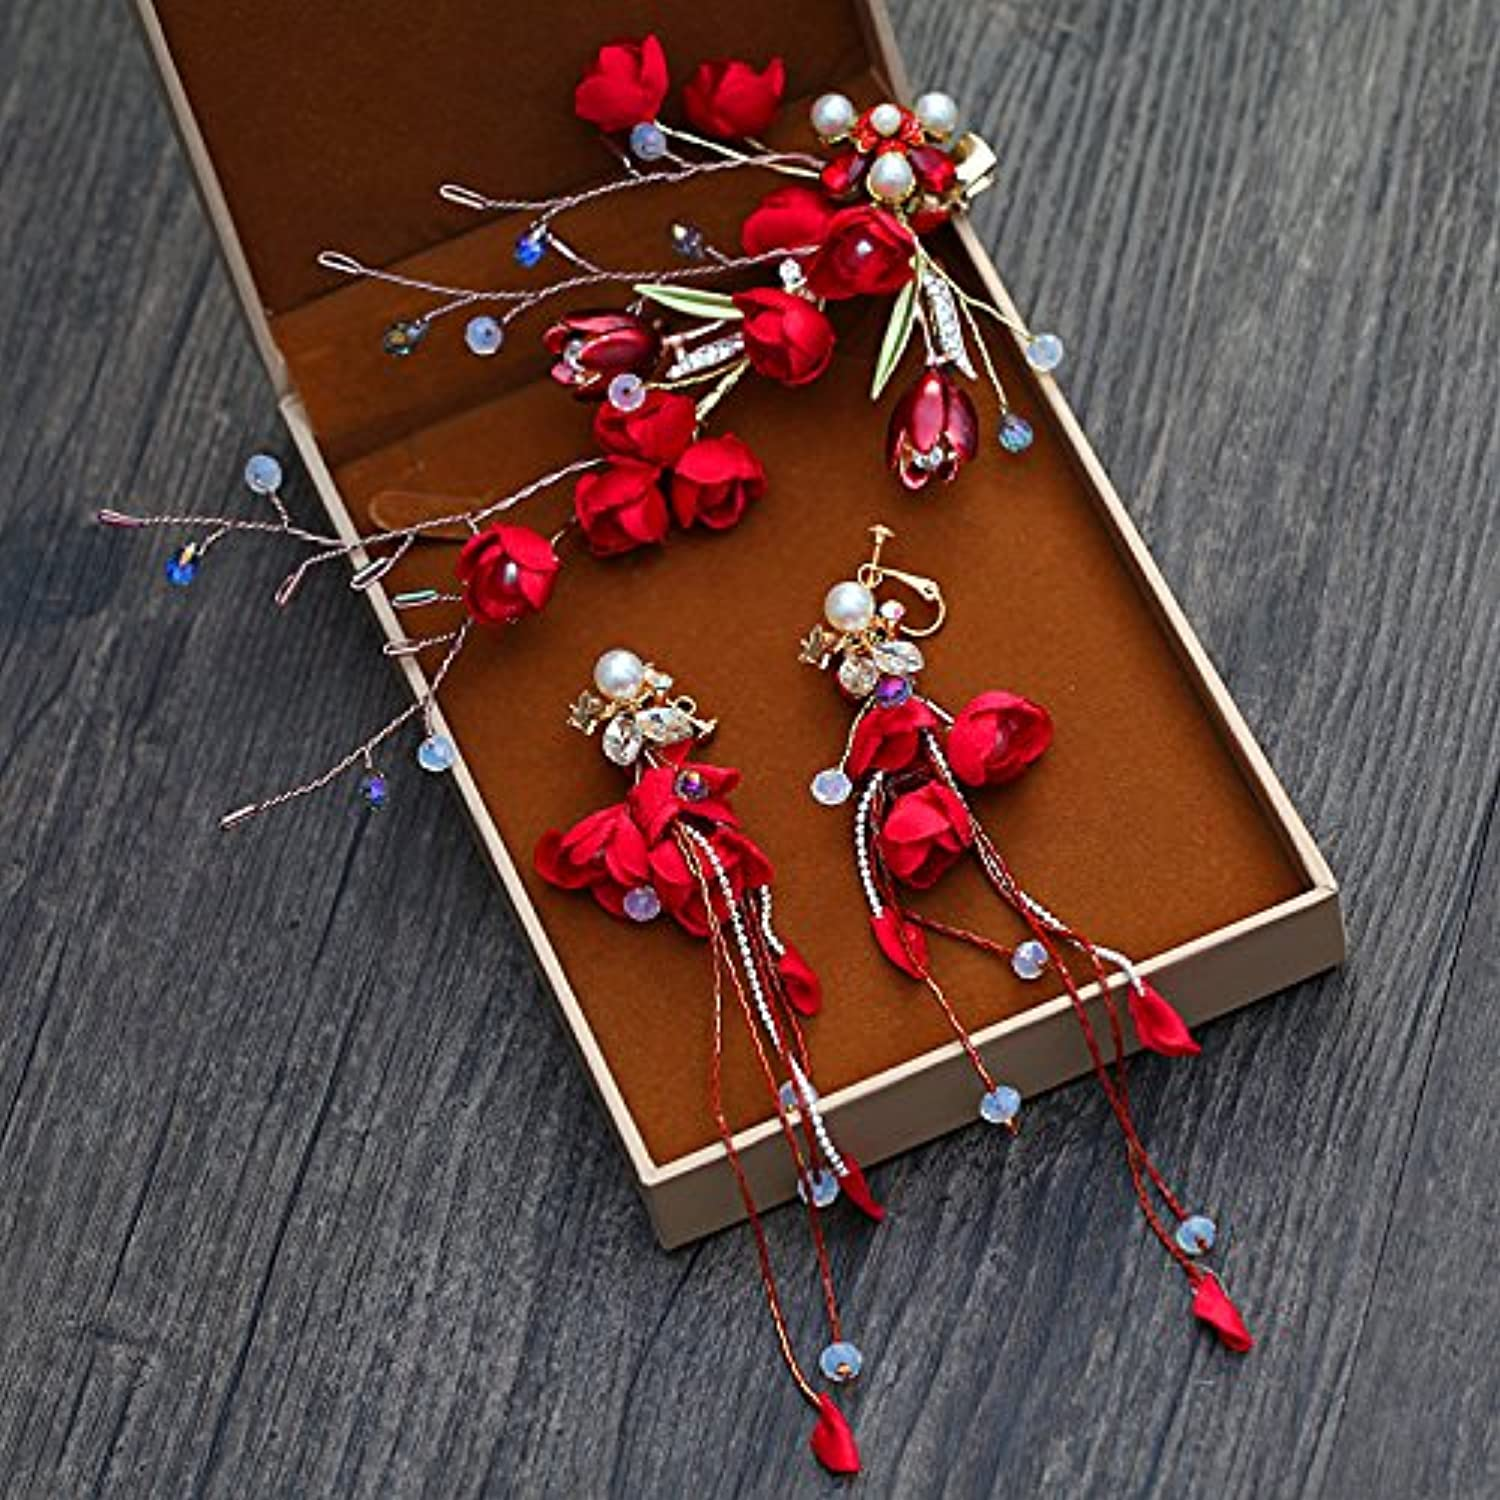 GTVERNHRetro Friezes Jewelry Manually The Wine is Red The First Flower Earrings Accessories Wedding and Hair Ornaments